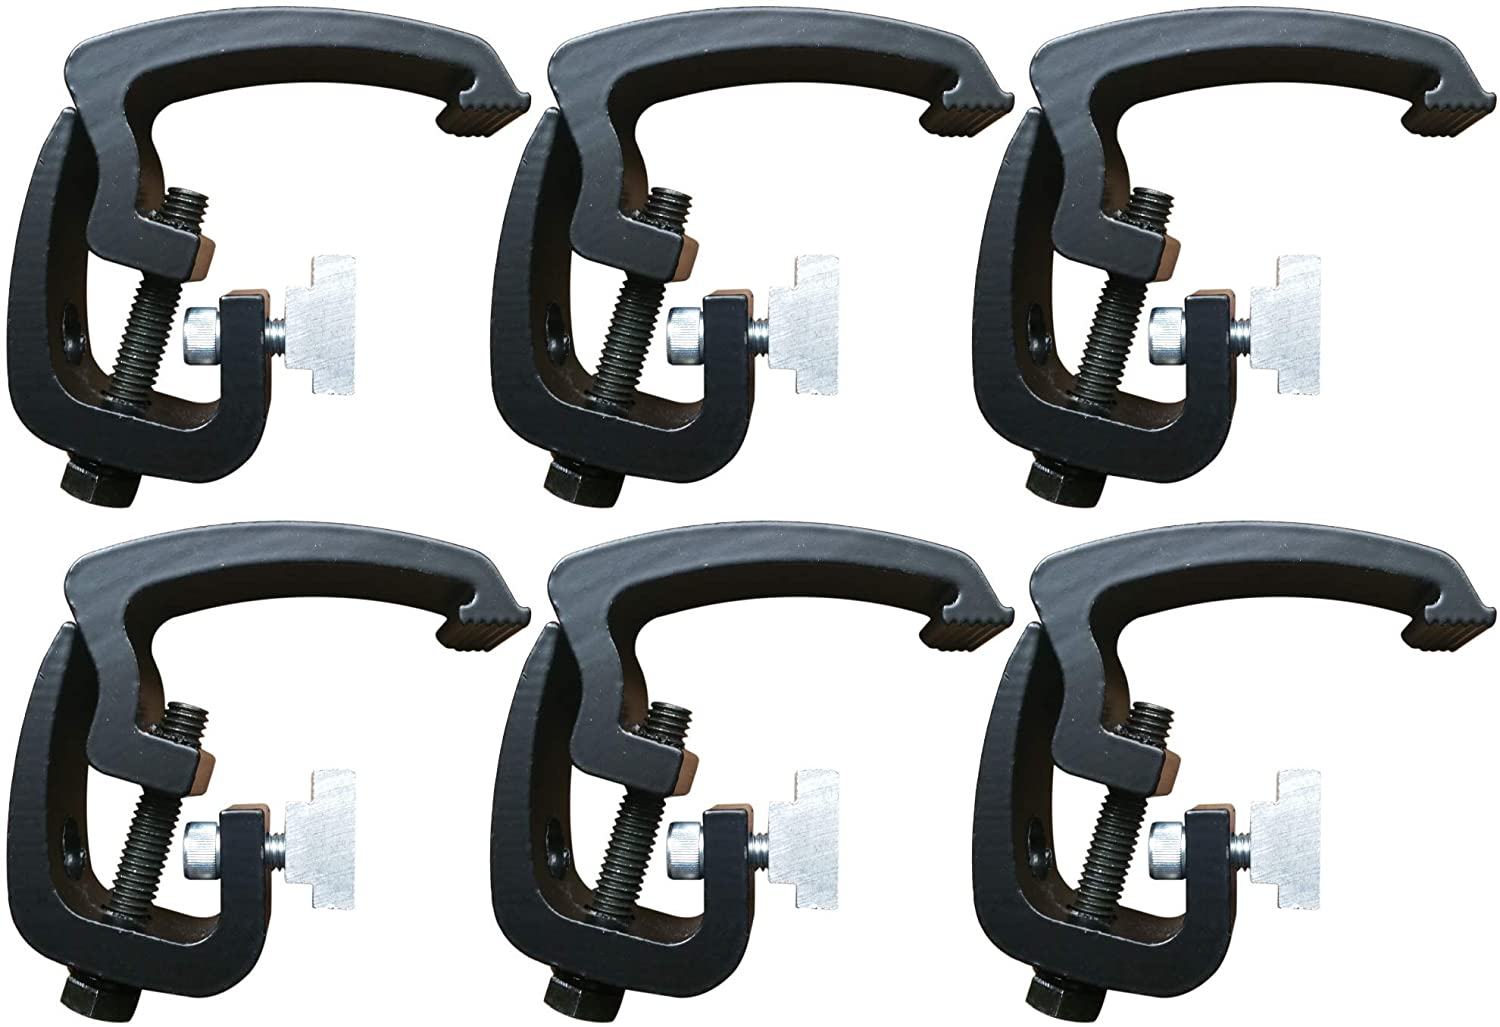 Silver Compatible with Toyota Tacoma 4 Pack Mounting Channel Track Truck Topper Cap 2005 /& Newer API Clamps Camper Shell